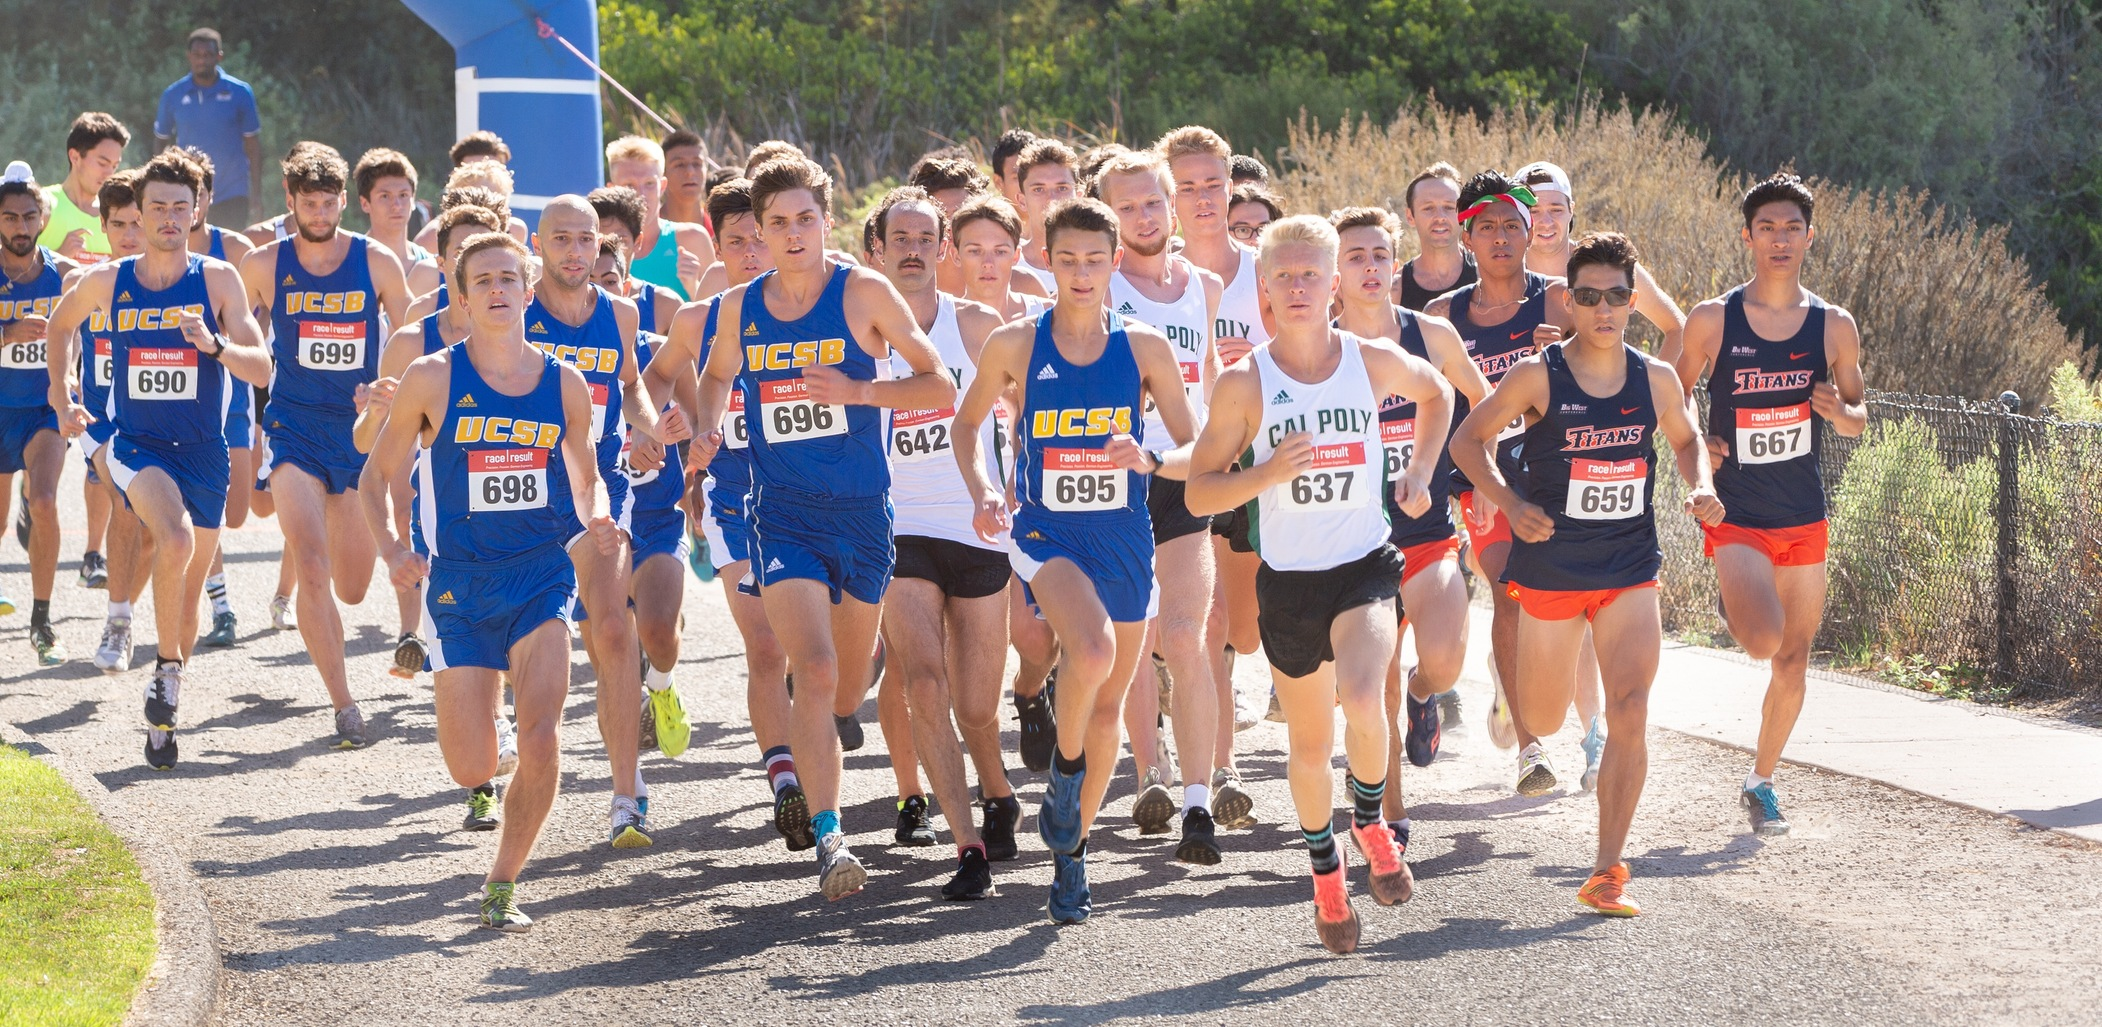 UCSB Lagoon Open Ticket Sales Now Available; 2019 Cross Country Schedule Announced